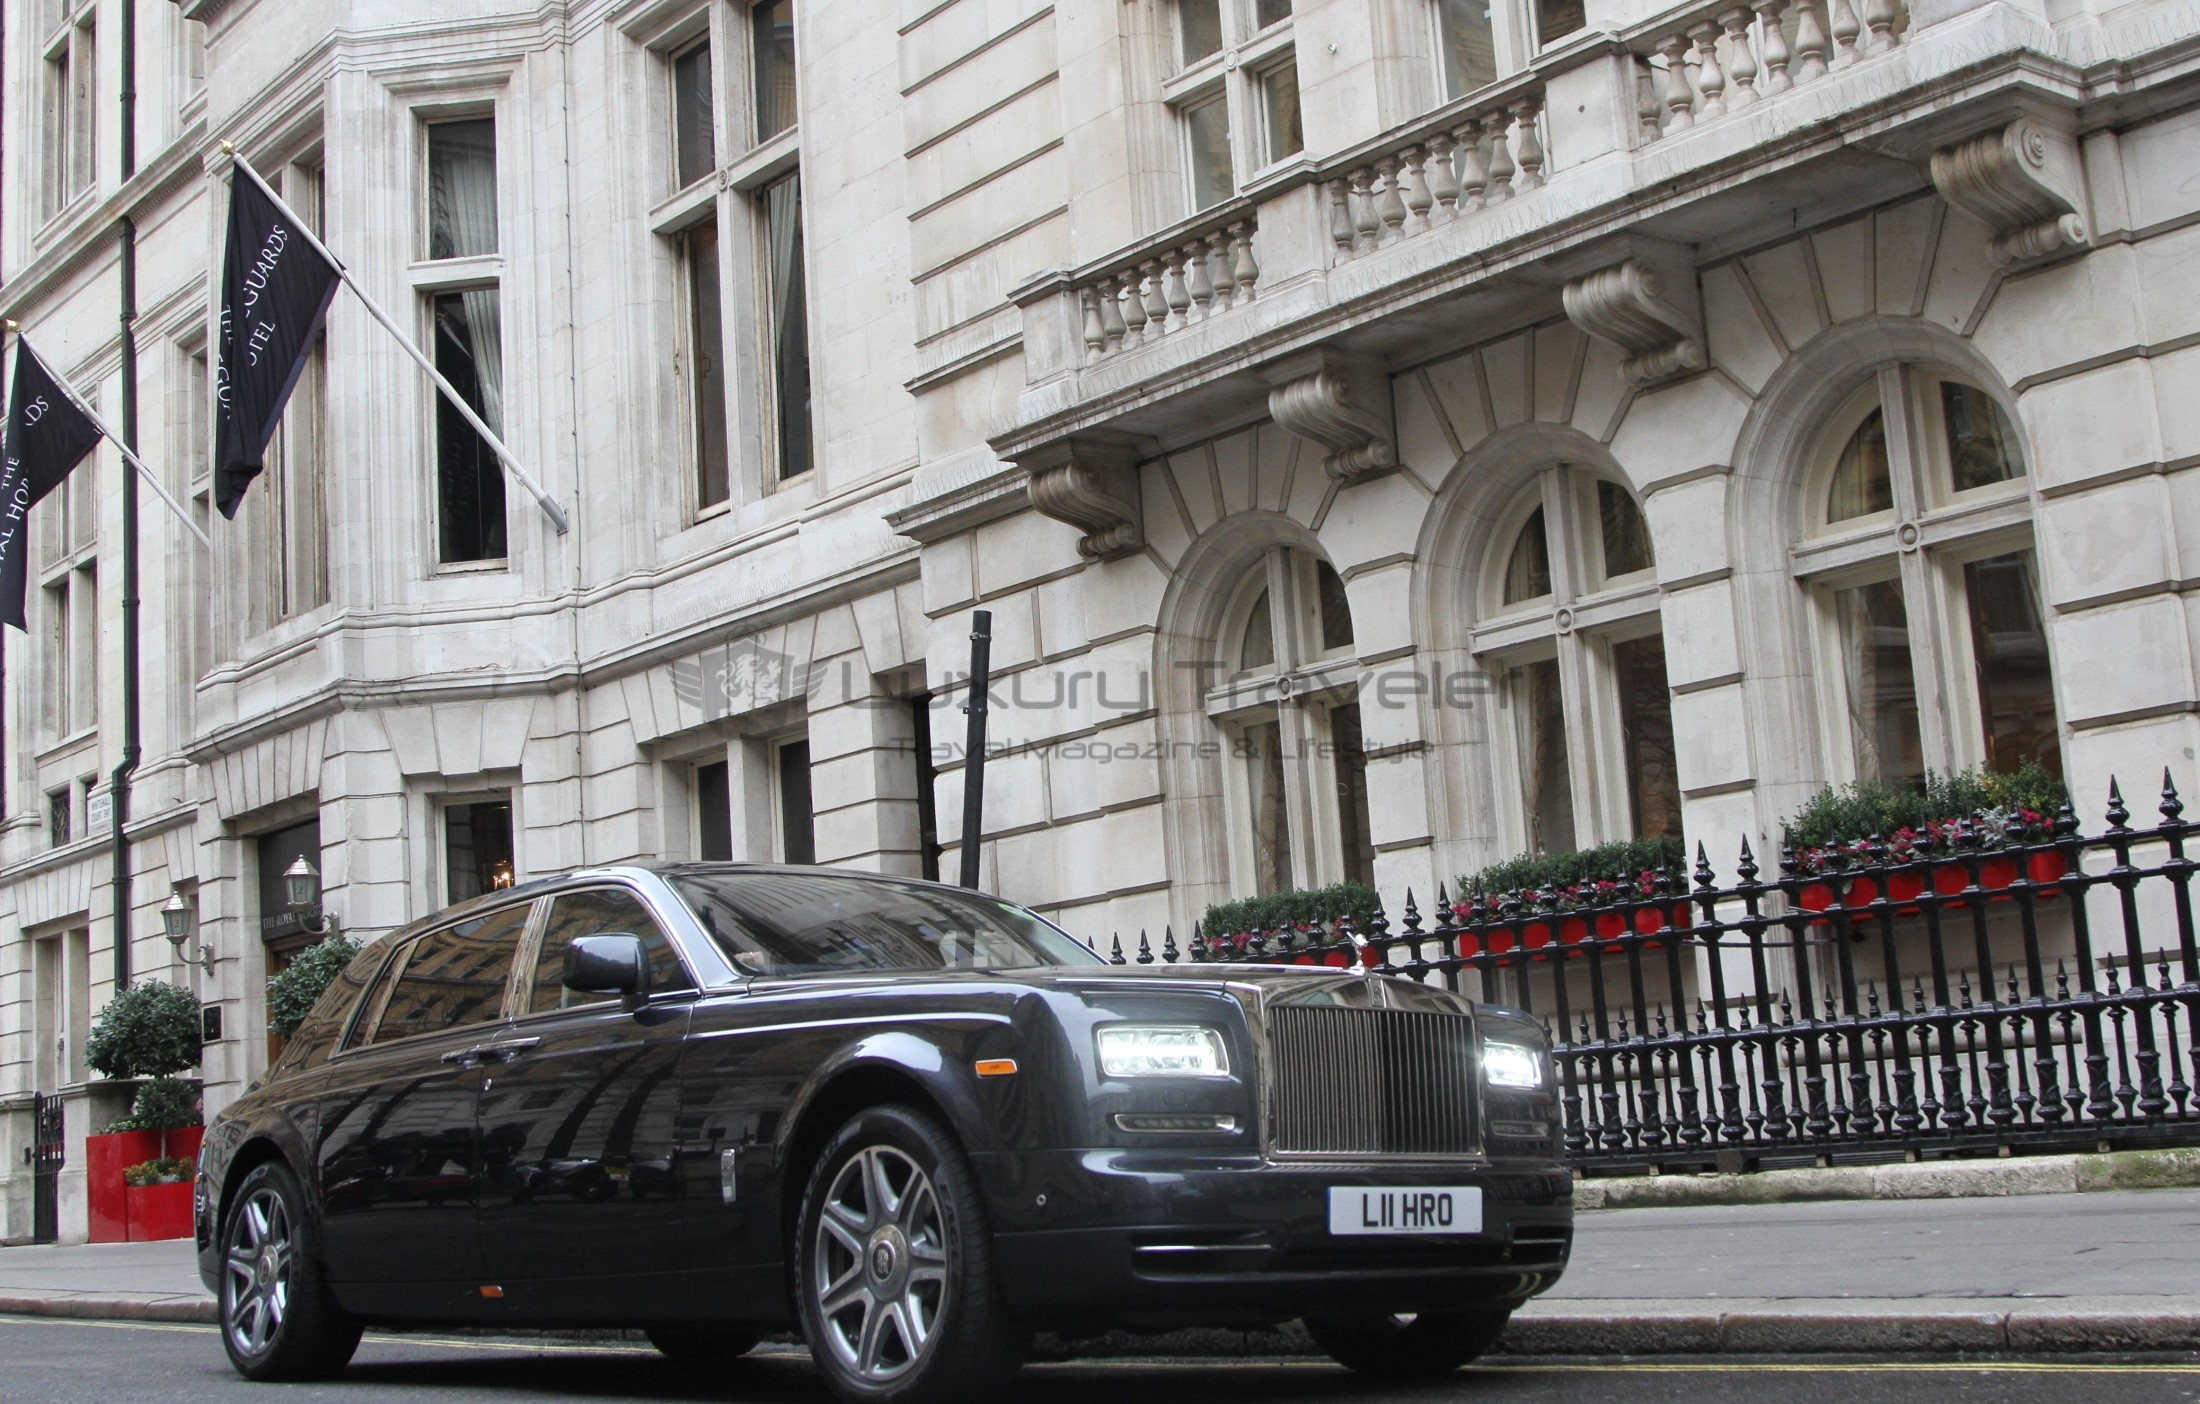 eg_chauffers_london_uk-rolls-royce-phantom-chauffeur